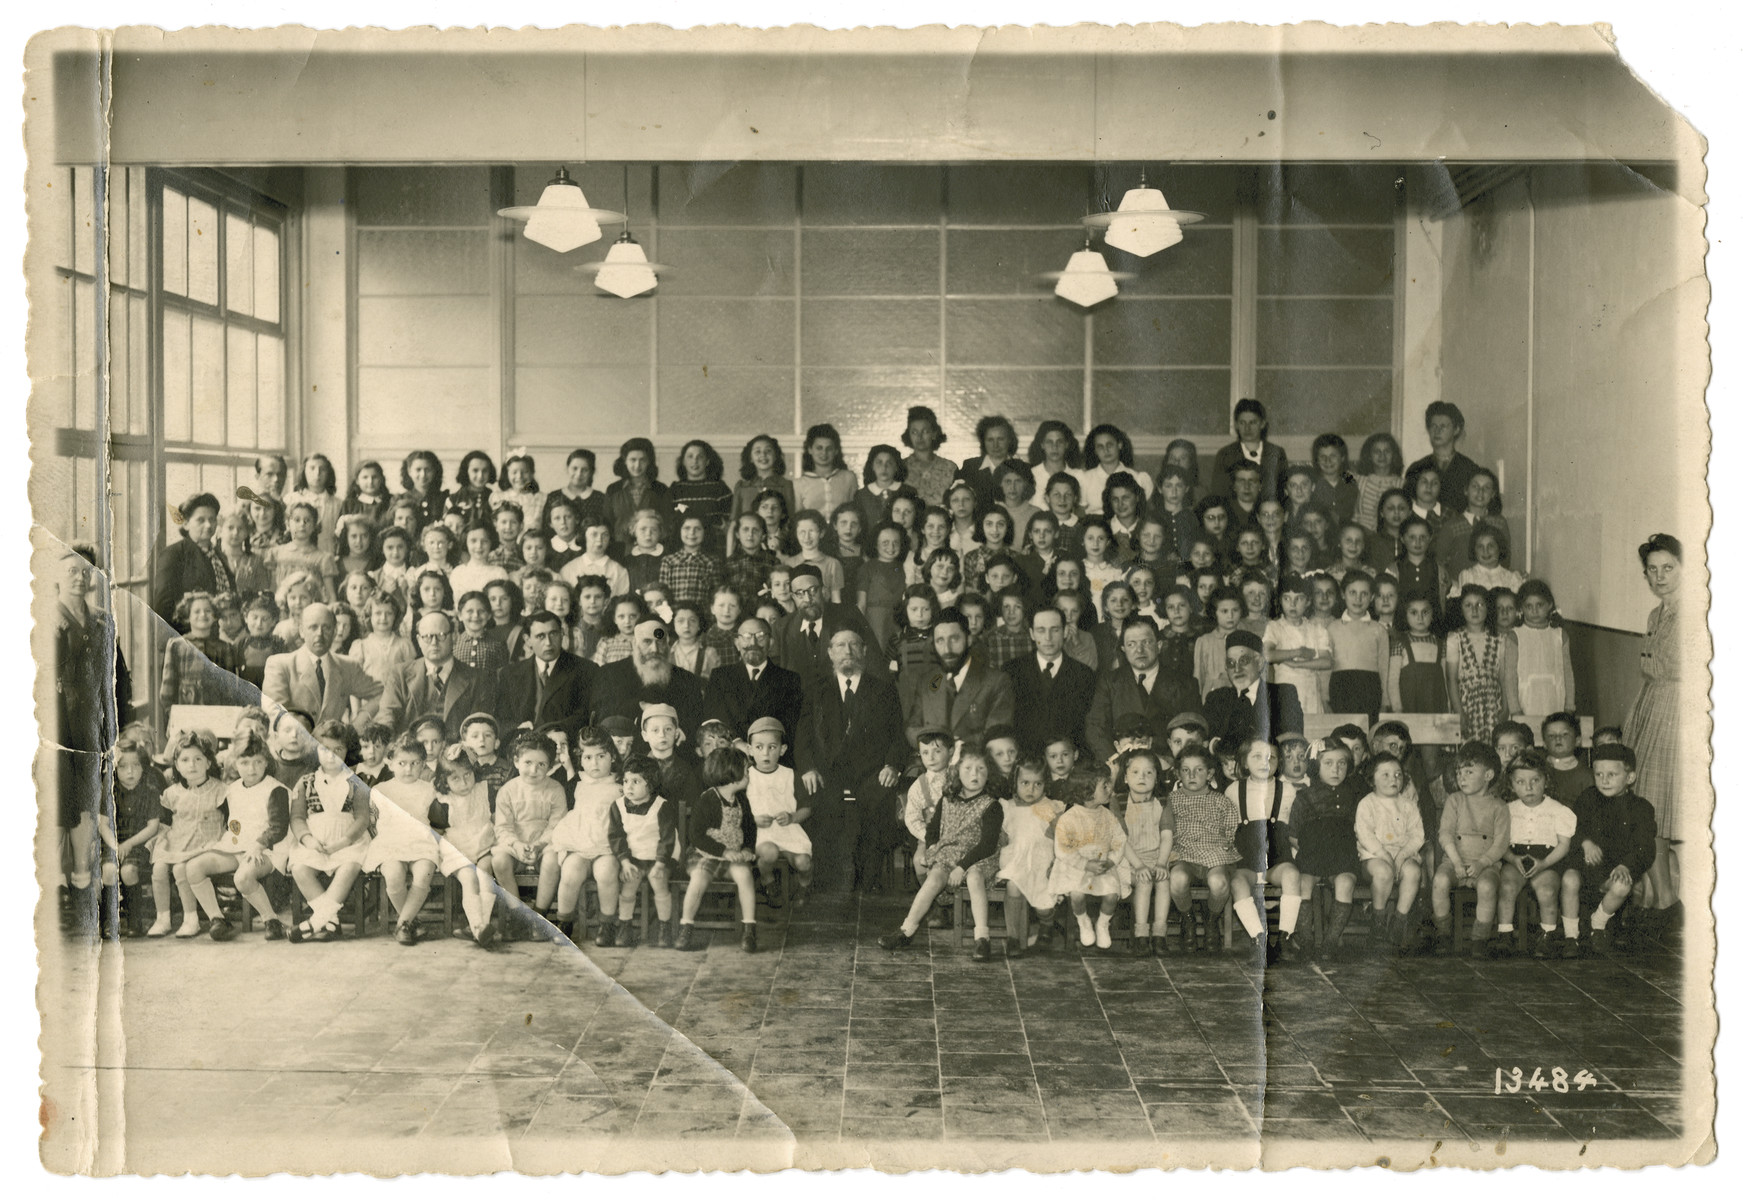 Group portrait of children in the Yesodei HaTorah school in Antwerp.  Eva Schonberg is pictured in the 6th row, third from the middle (to the right).